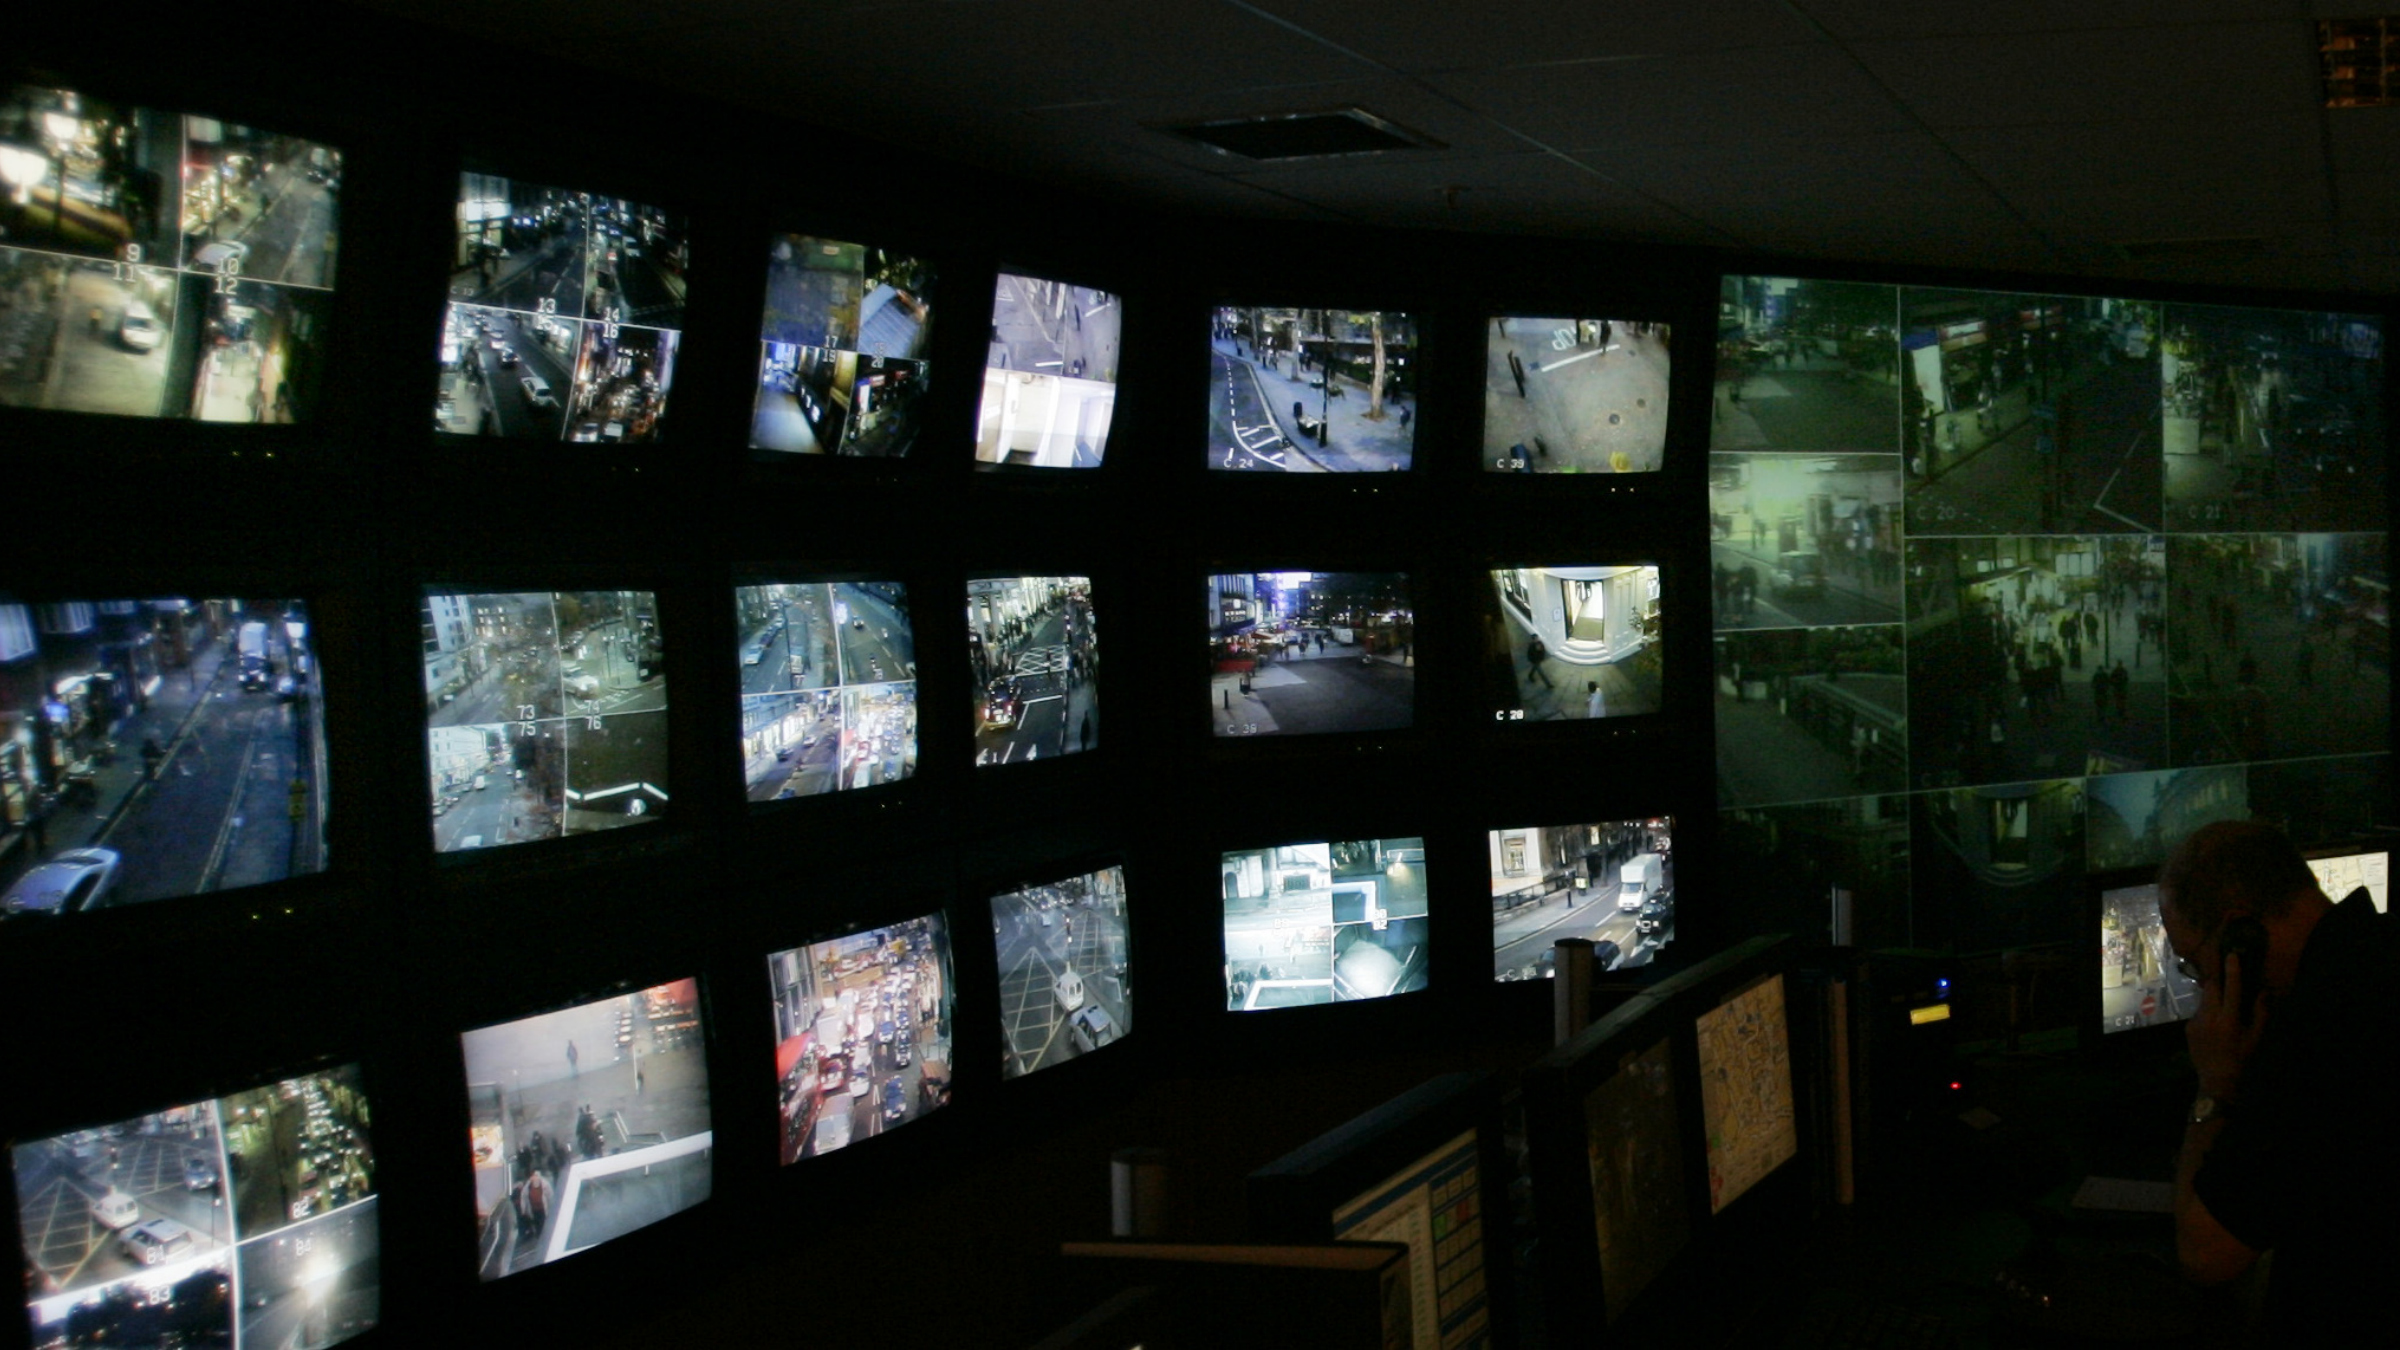 Security camera room